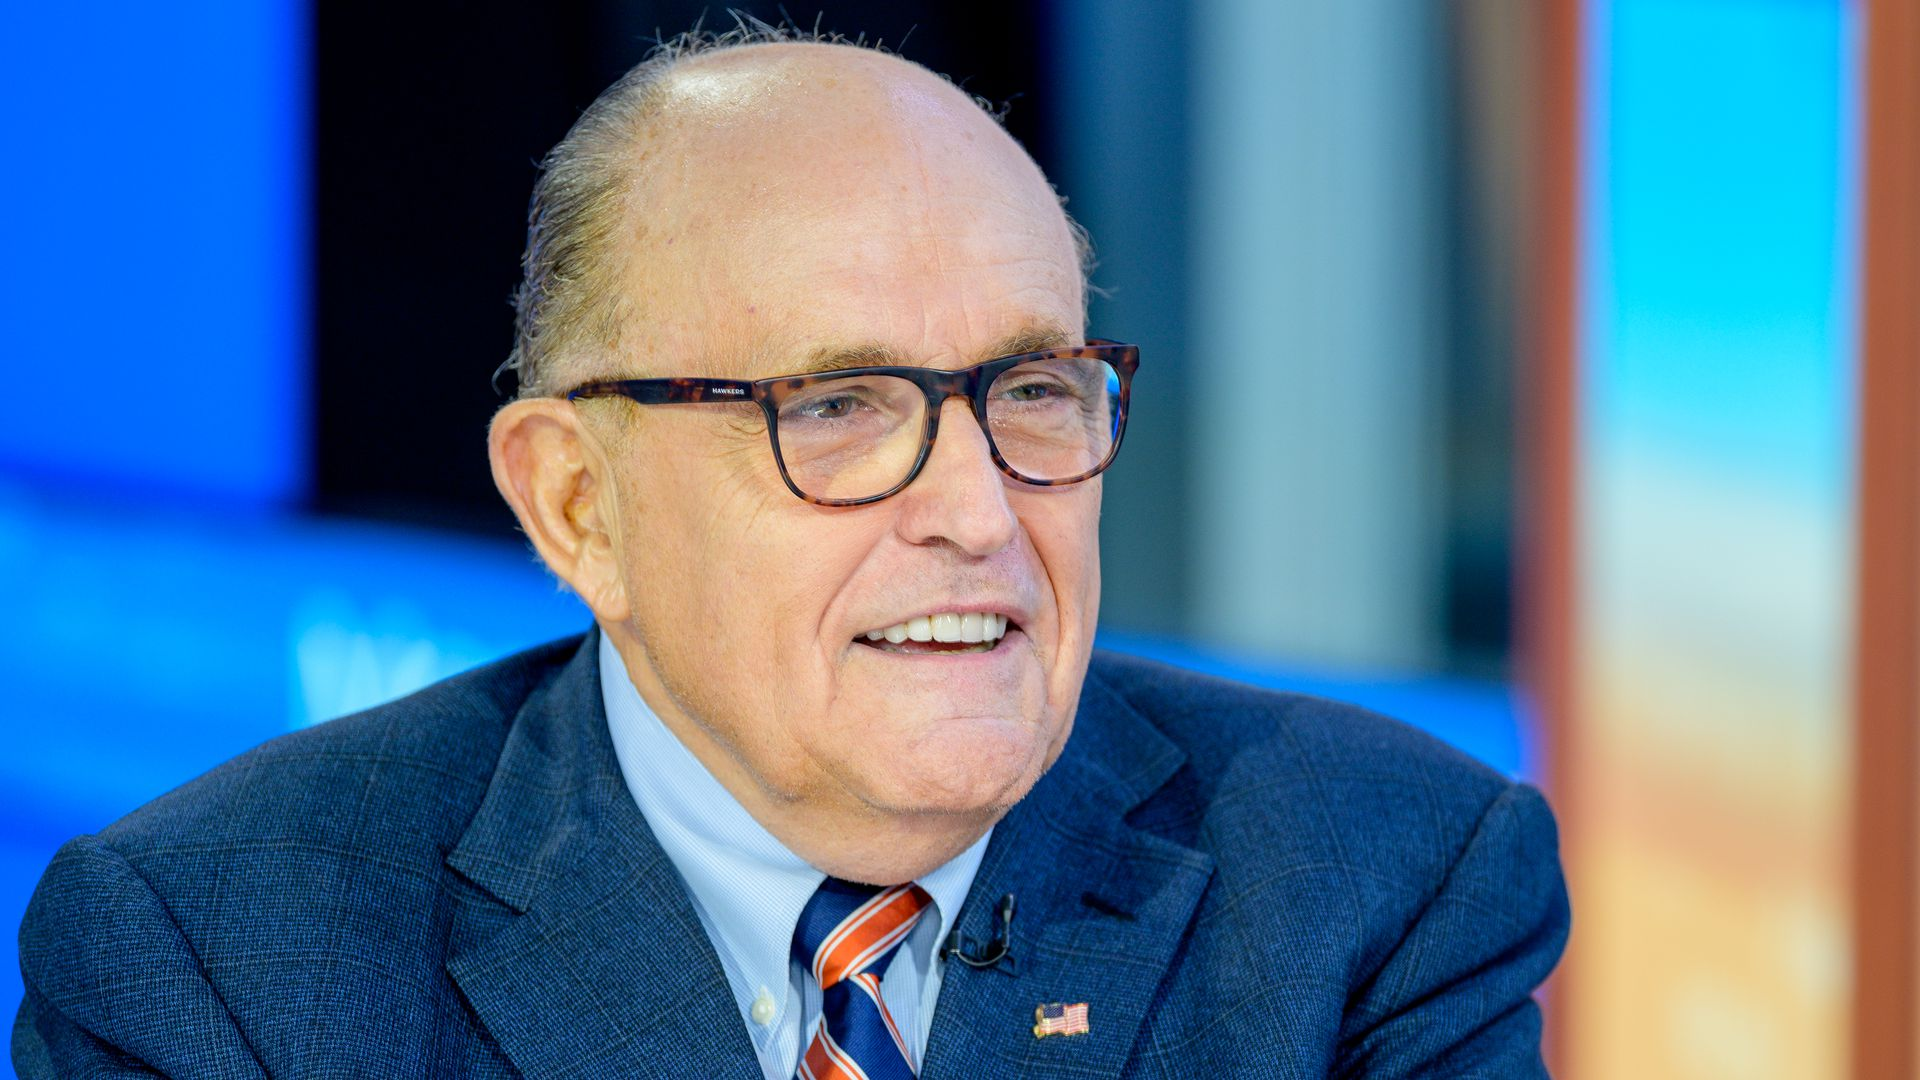 In this image, Giuliani wears a suit and glasses and smiles